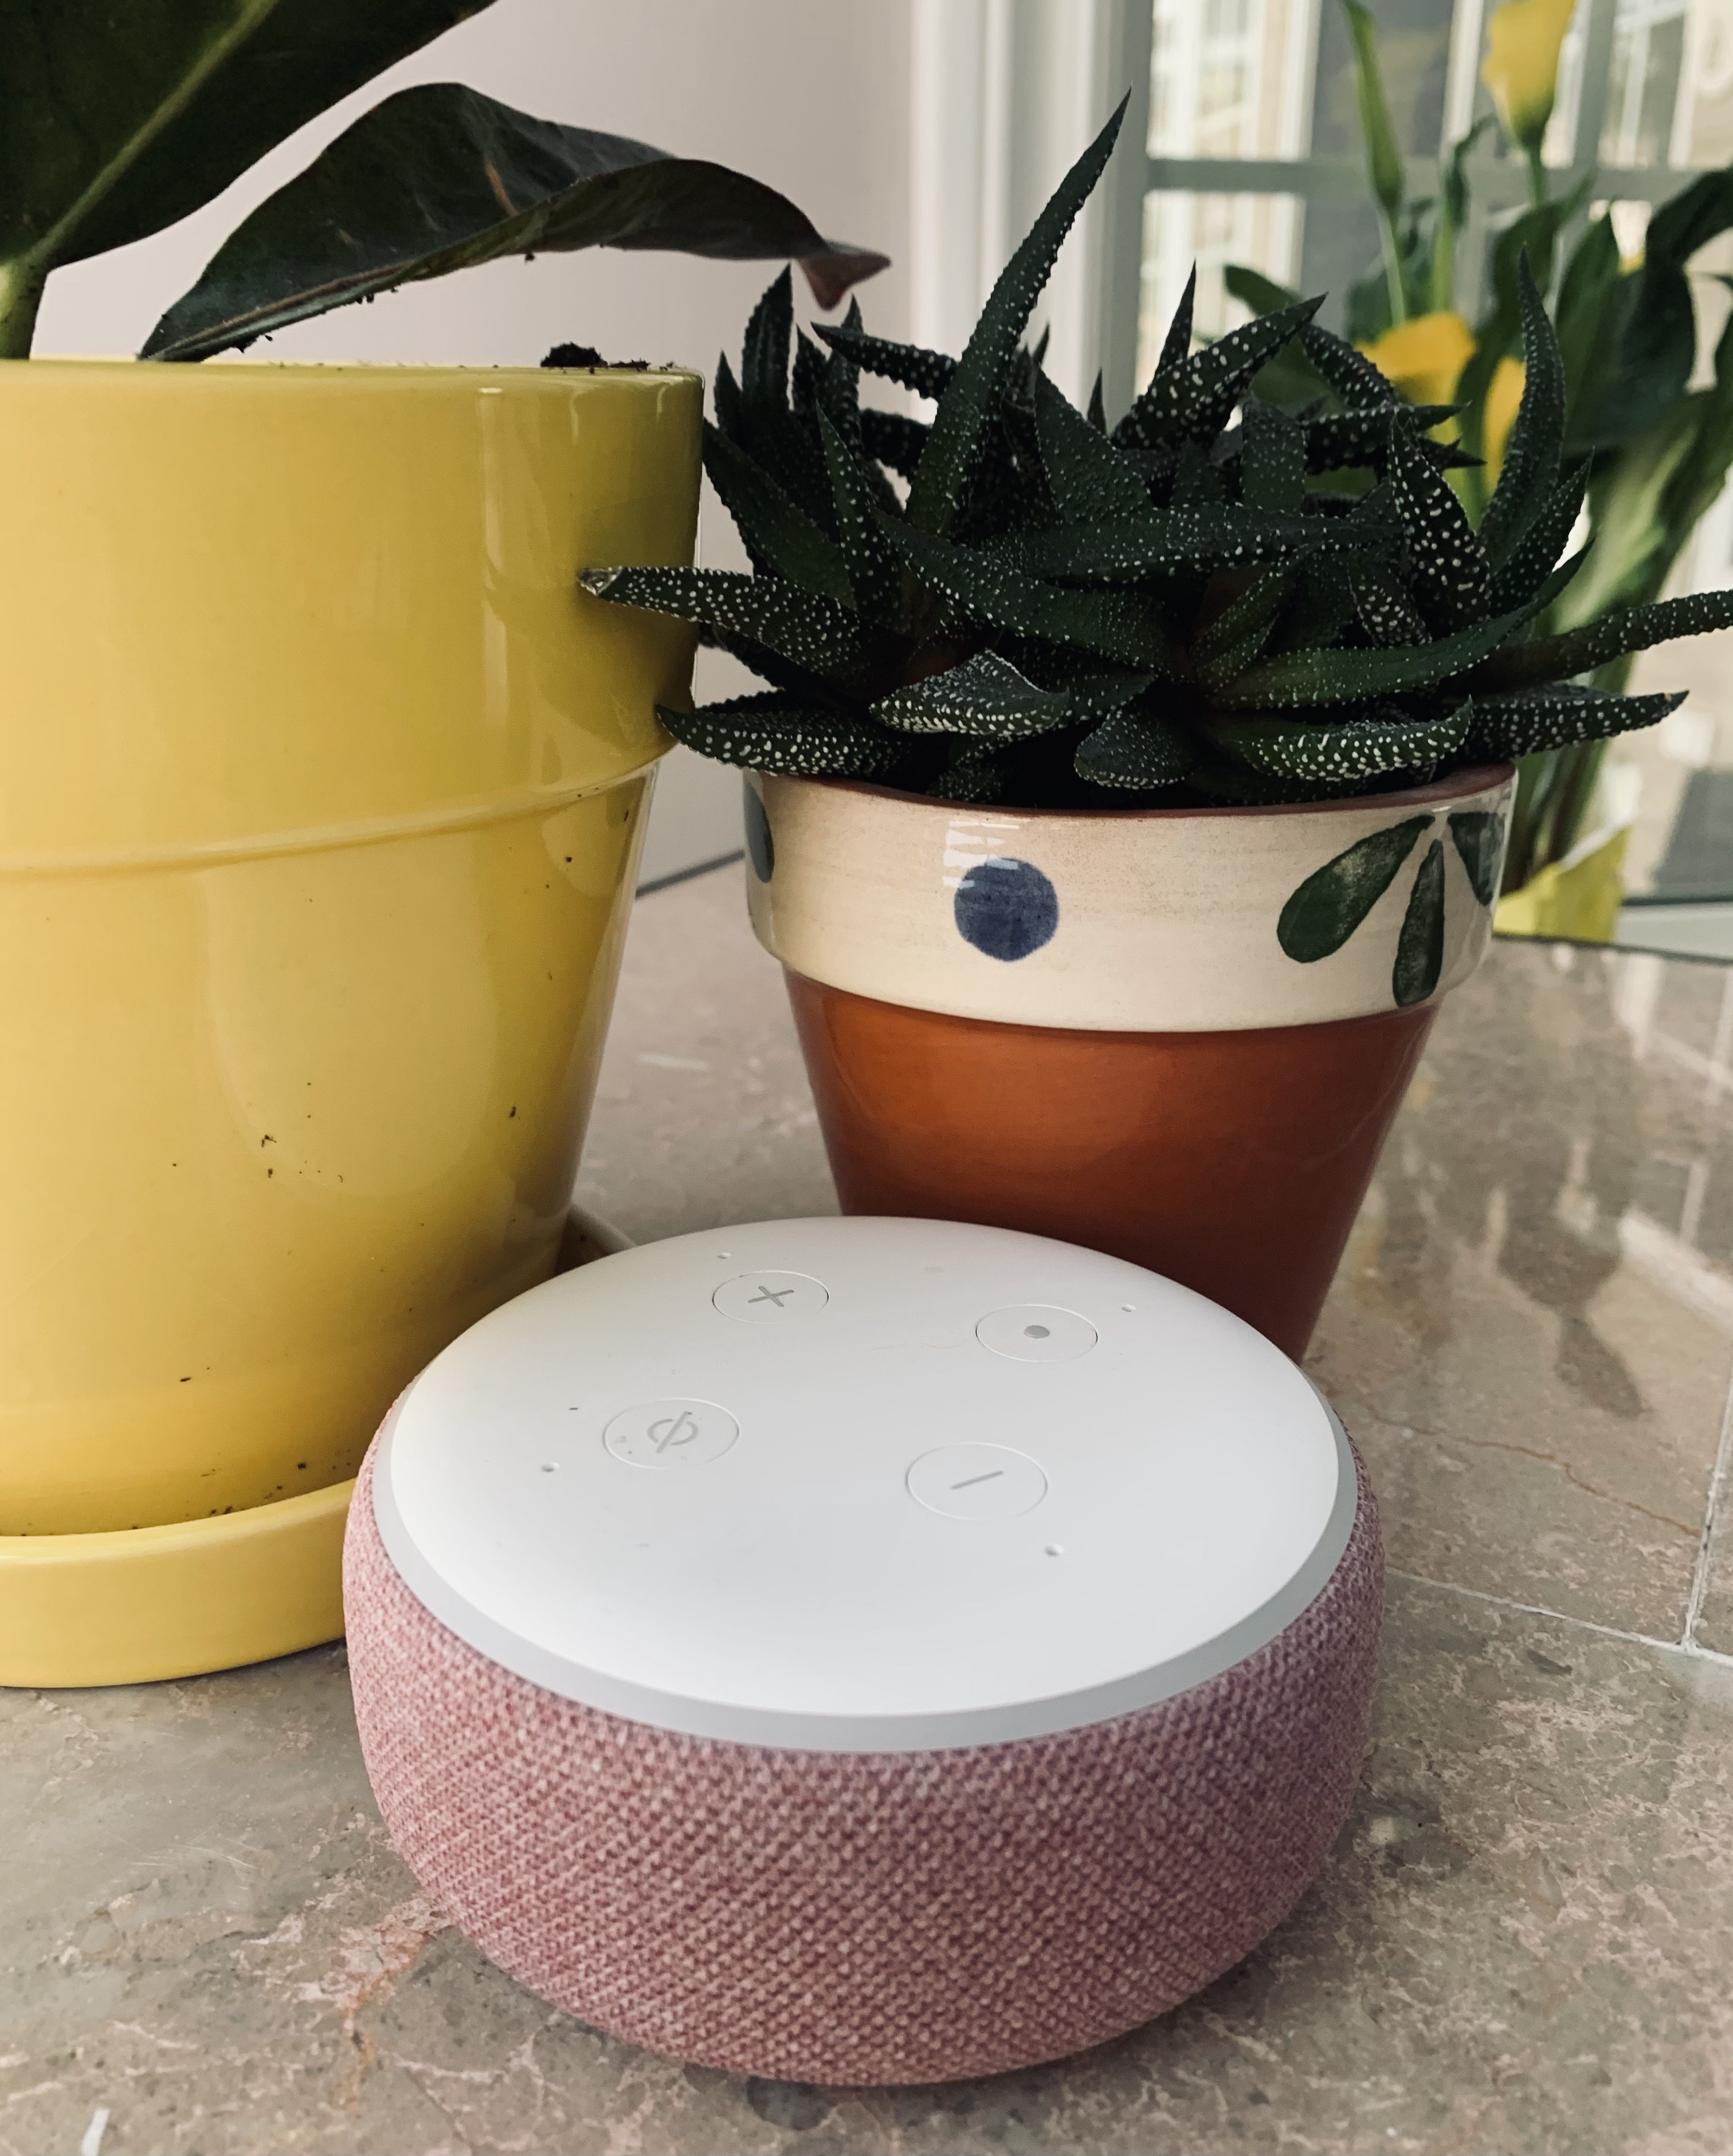 Echo Dot 3 on marble coffee table, with potted plants